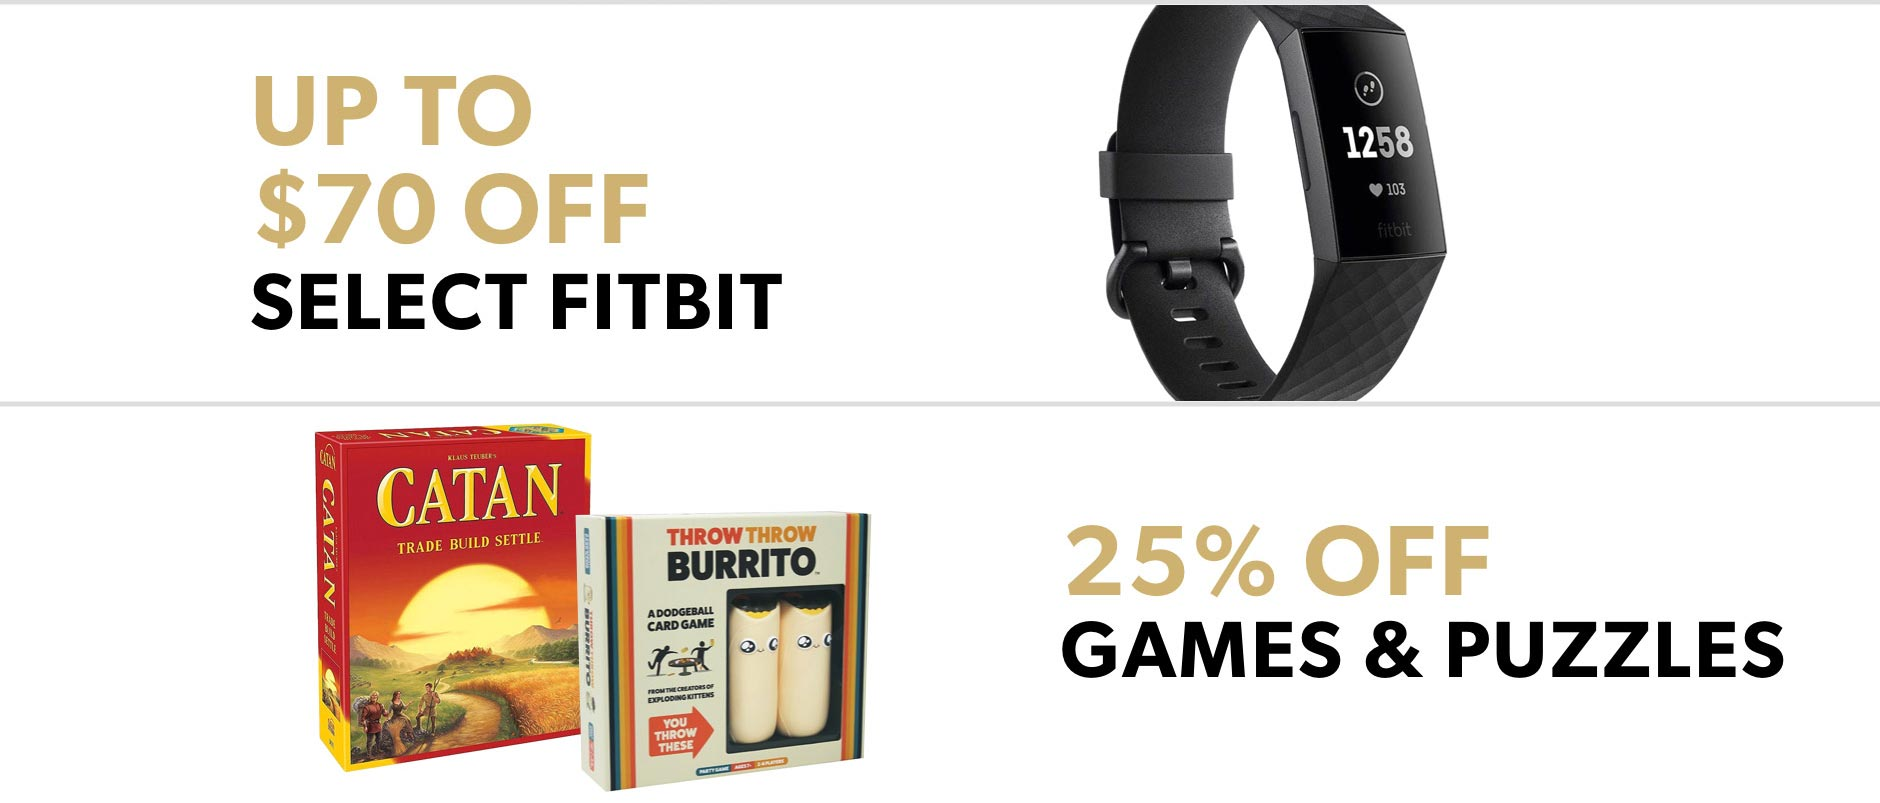 Black Friday In-Store Only: Up to $70 off select Fitbit & 25% off games and puzzles